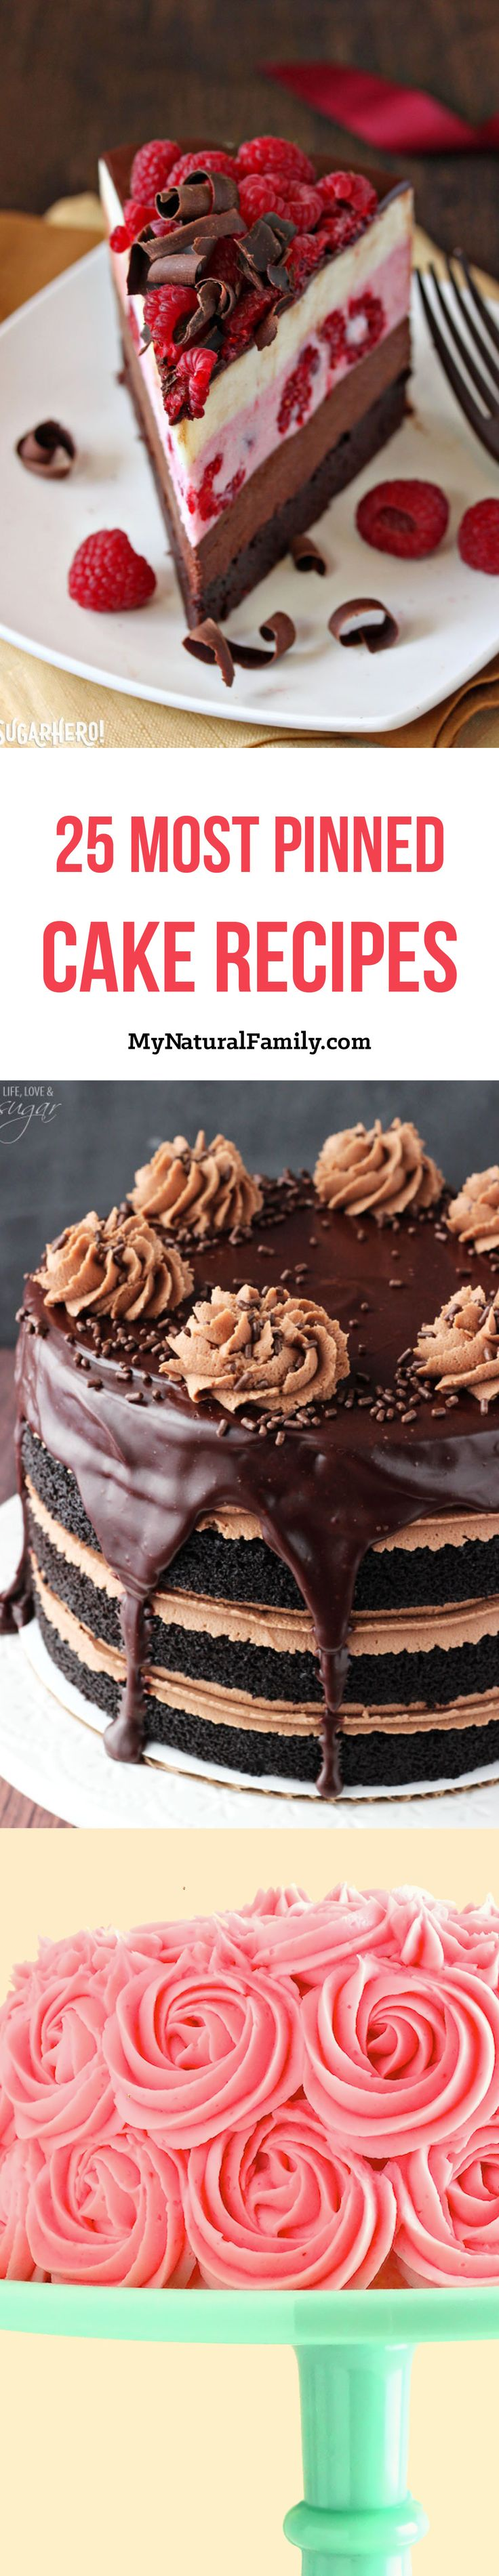 The 25 Most Pinned Cake Recipes on Pinterest - Compiled by My Natural Family ~ Shown: 1. Chocolate Raspberry Mousse Cake by Sugar Hero, 2. Nutella Chocolate Cake by Life Love and Sugar and 3. White Velvet Layer Cake with Strawberry-Raspberry Mascarpone Buttercream by Wicked Good Kitchen. Click to see the entire list!